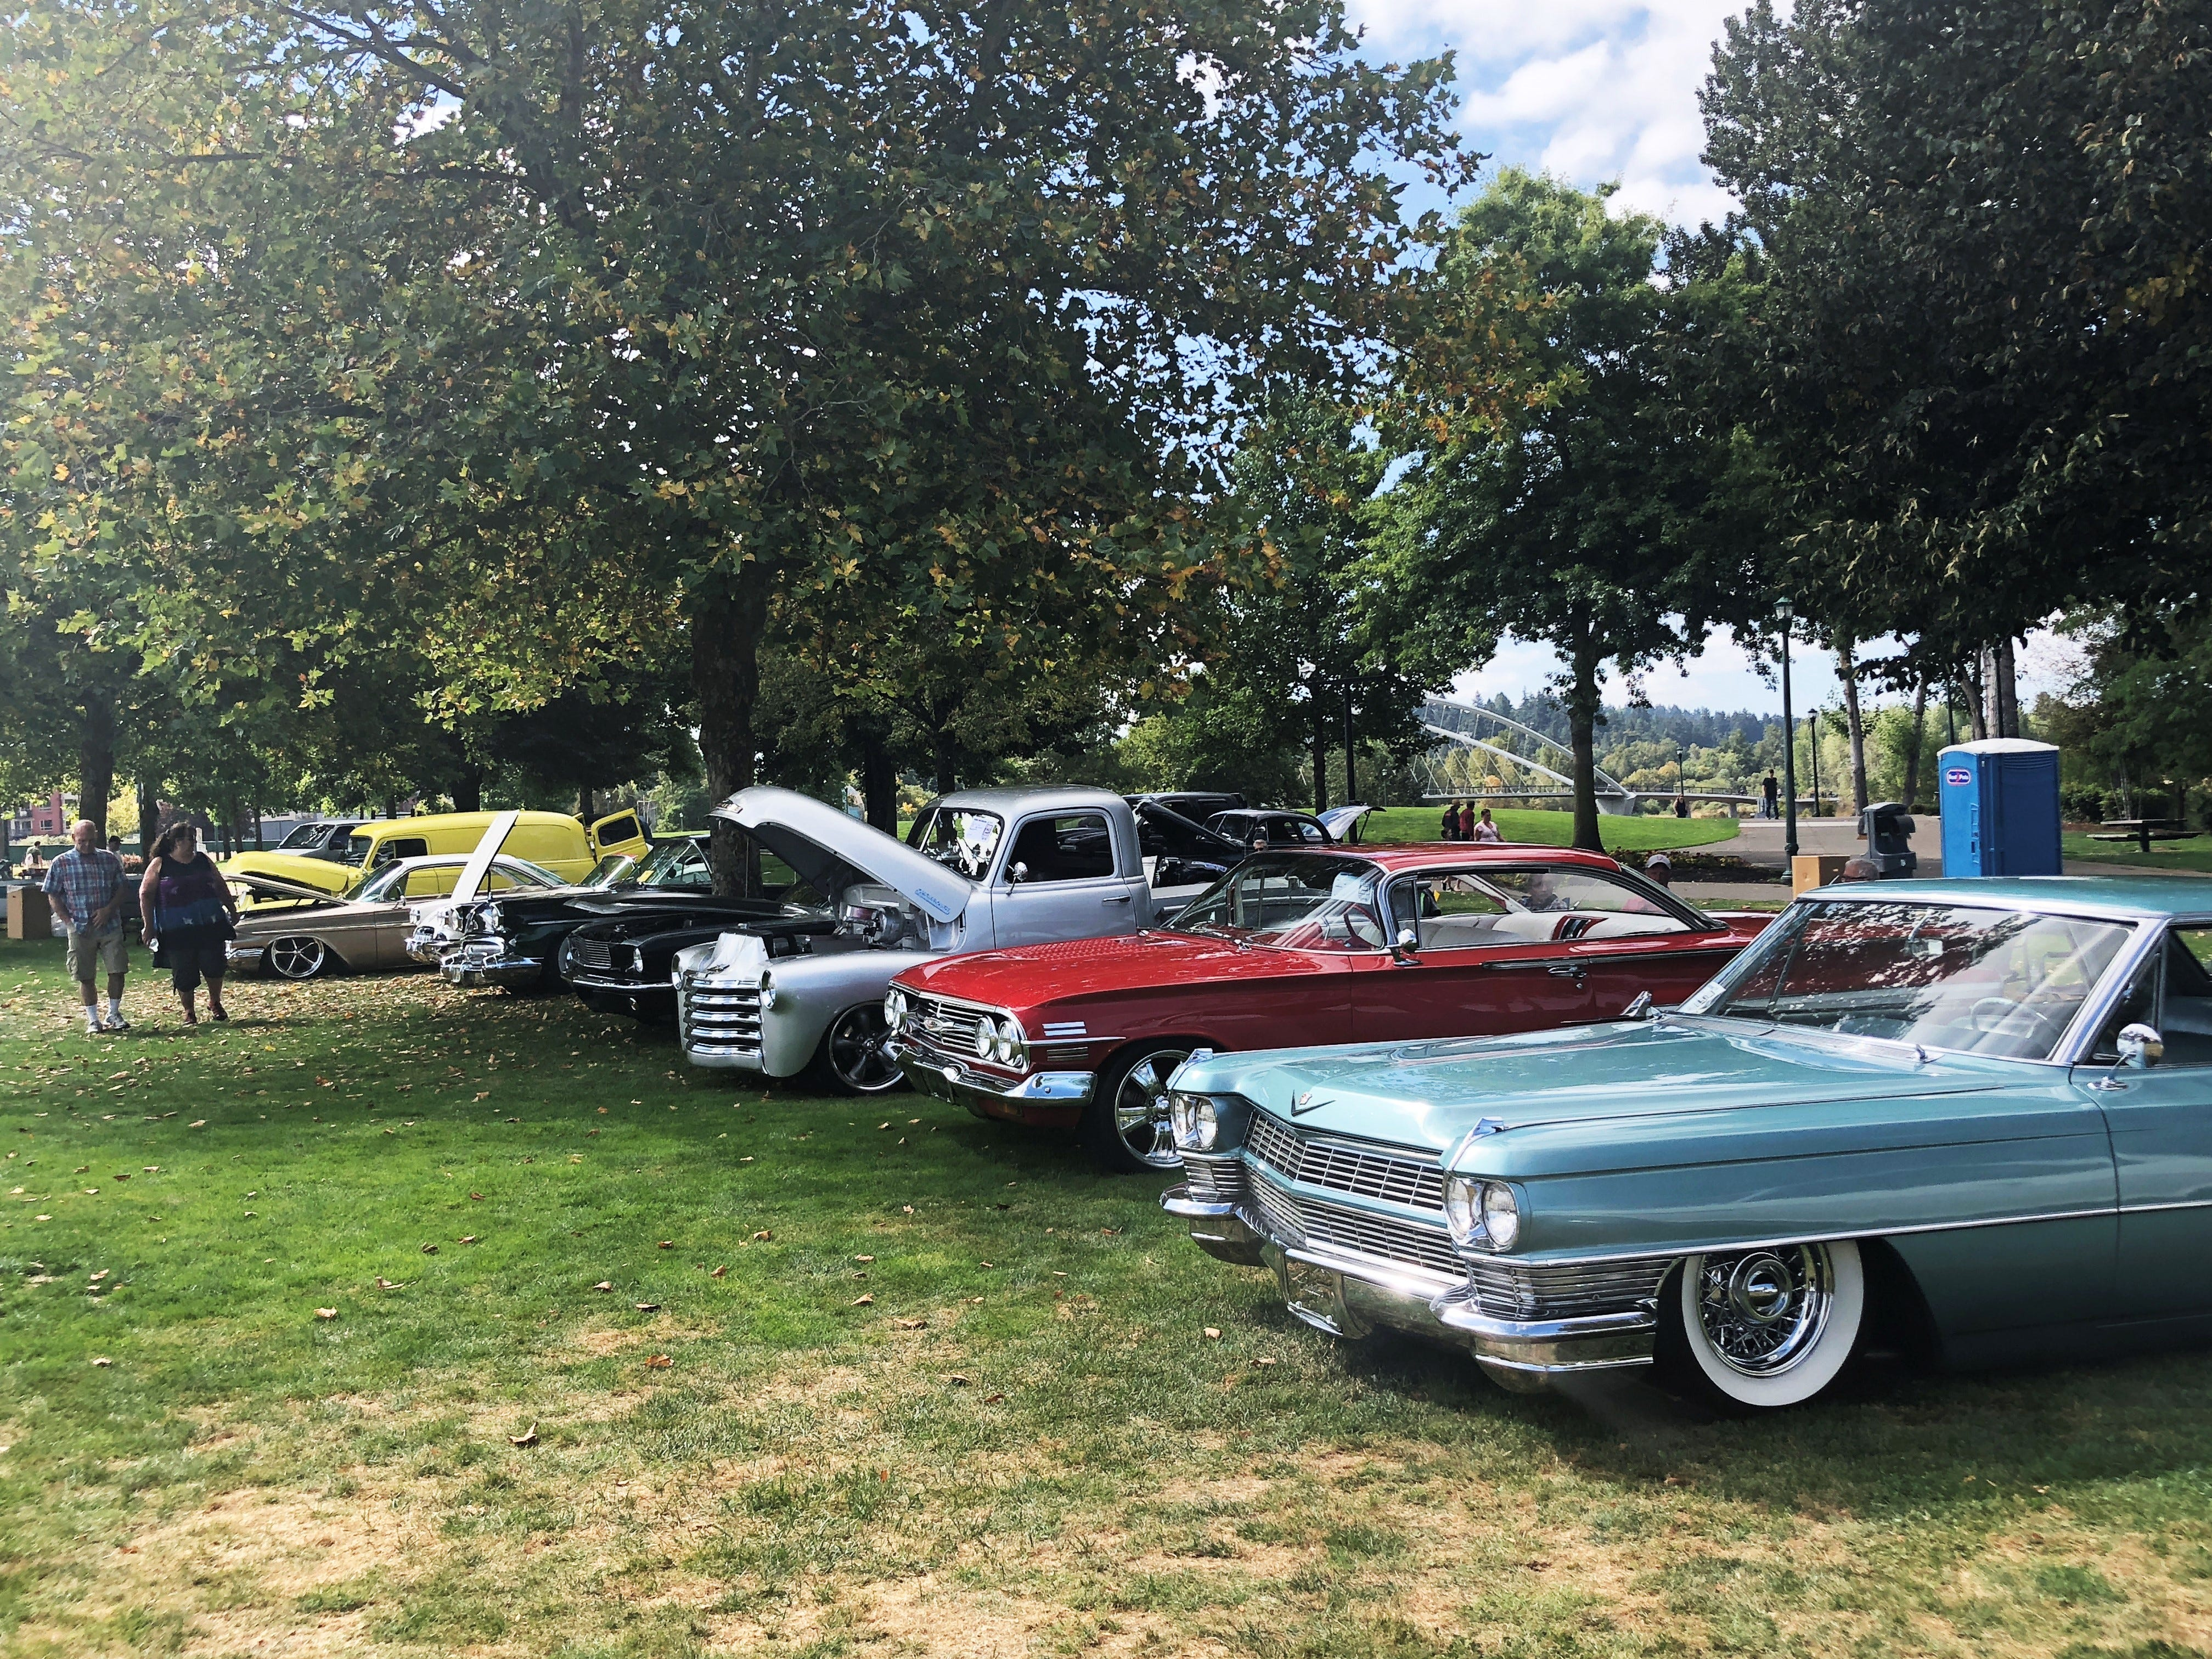 A row of cars at the 27th Annual Carousel Cruise at Riverfront Park in Salem on Saturday, Sept. 1. The event is held annually by the Willamette Valley Street Rods club.